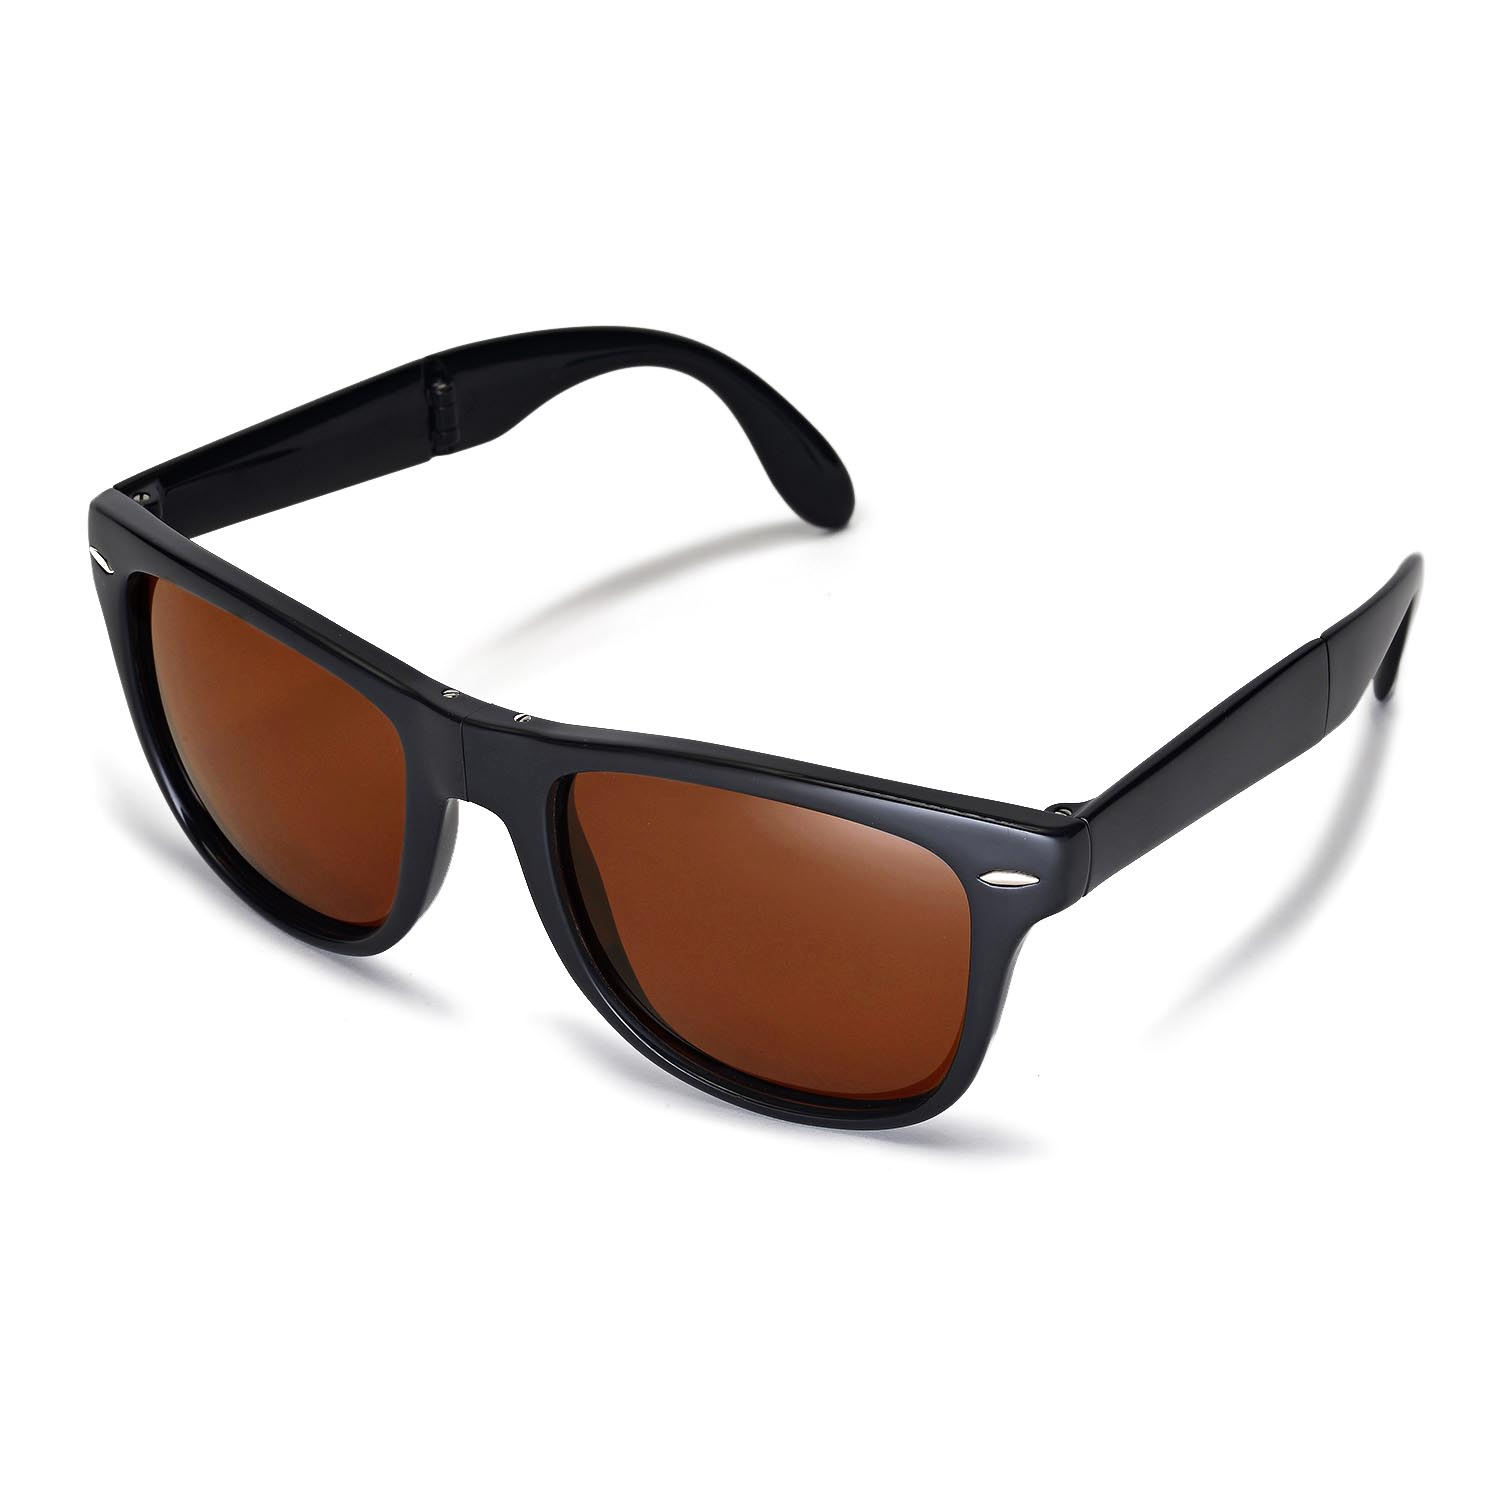 New Walleva Polarized Brown Lenses For Ray-Ban Wayfarer ...